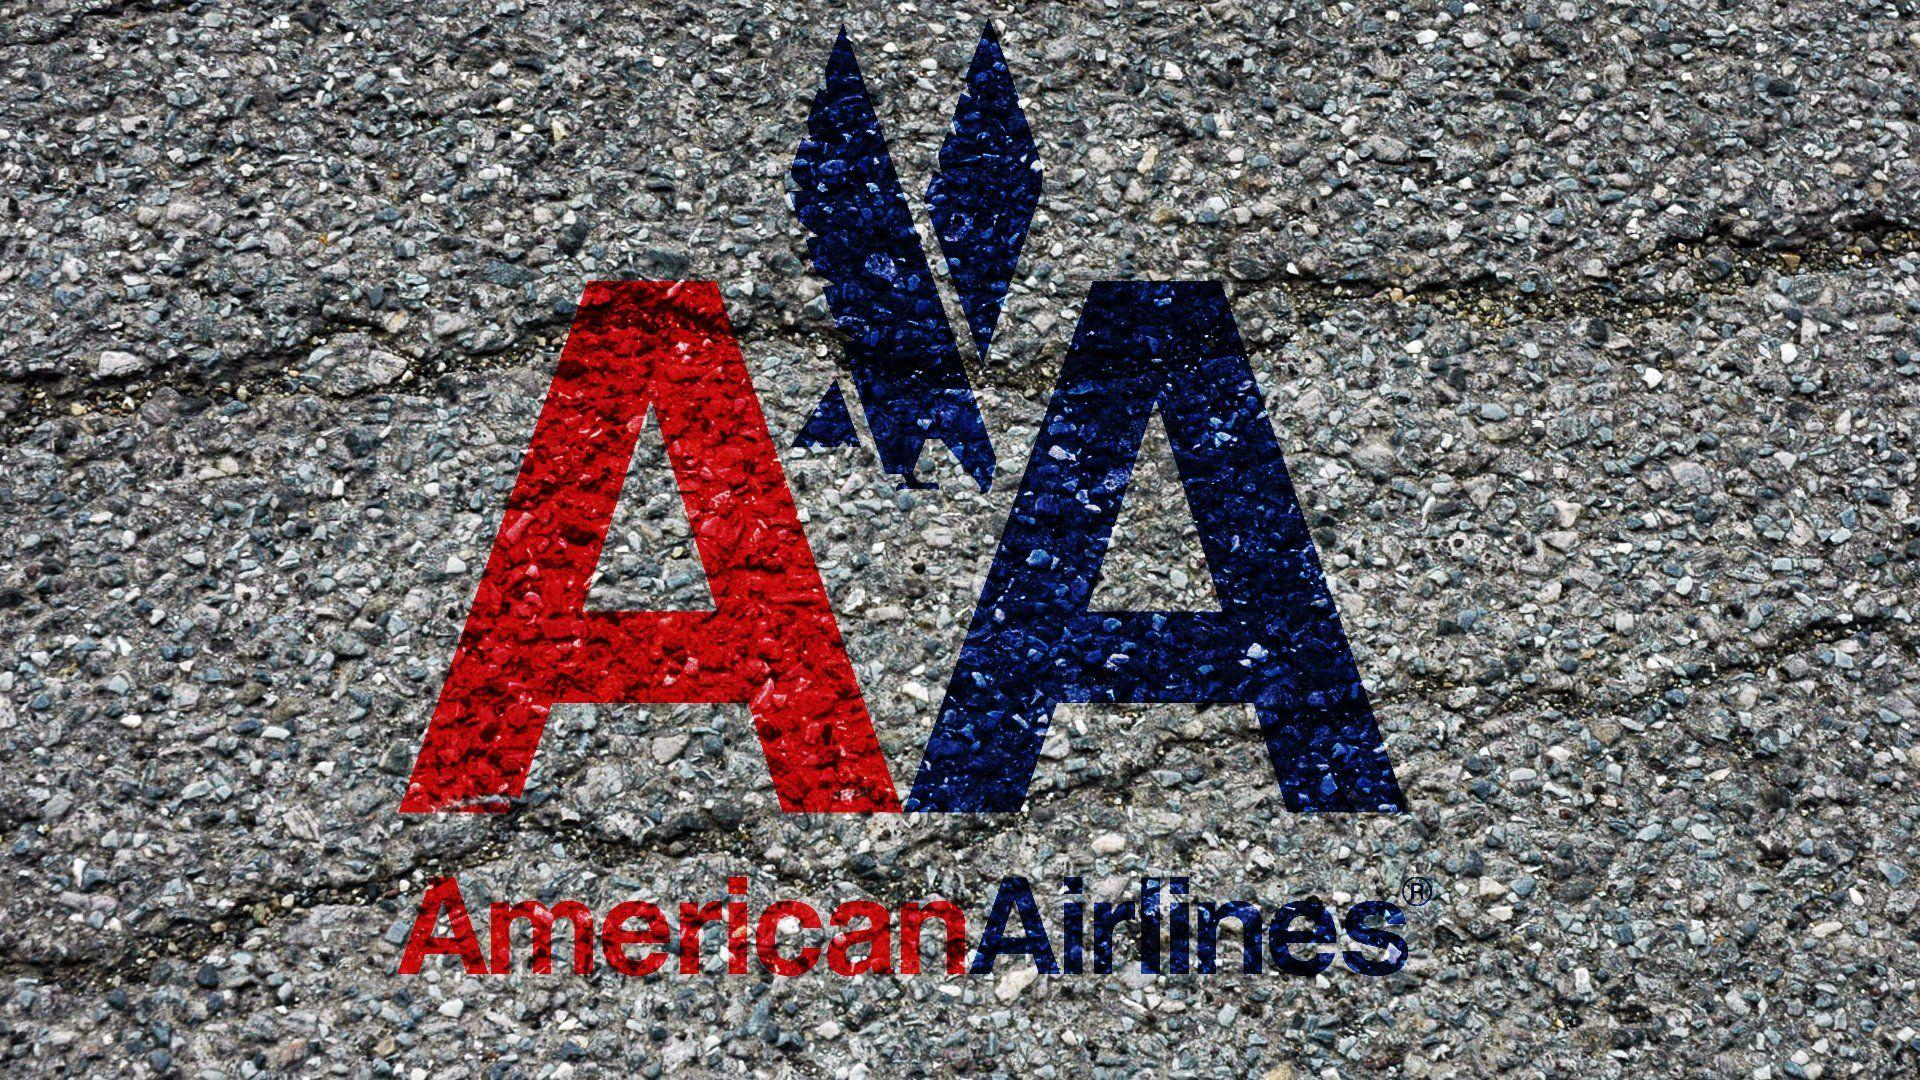 American Airlines Wallpapers - Wallpaper Cave